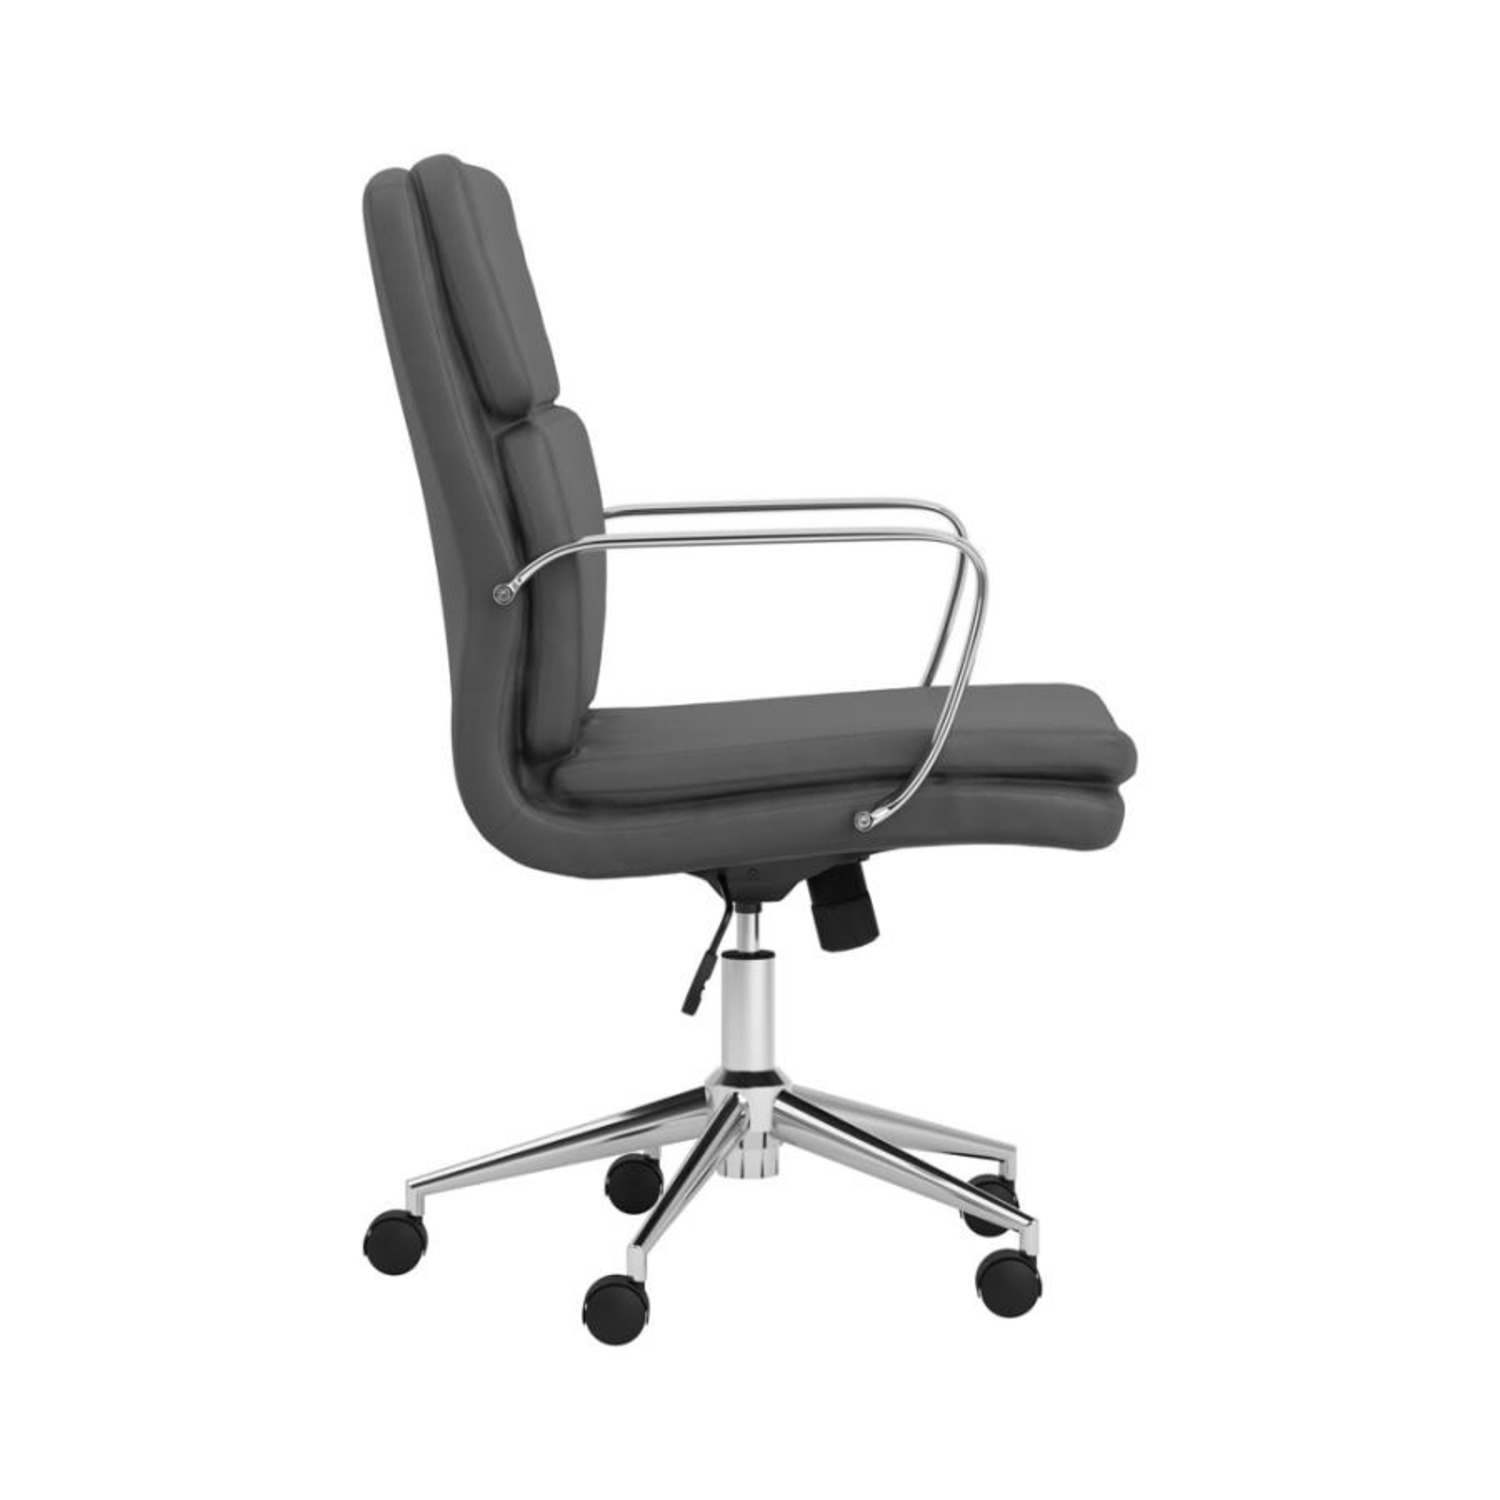 Office Chair In Grey Leatherette & Chrome Finish - image-5